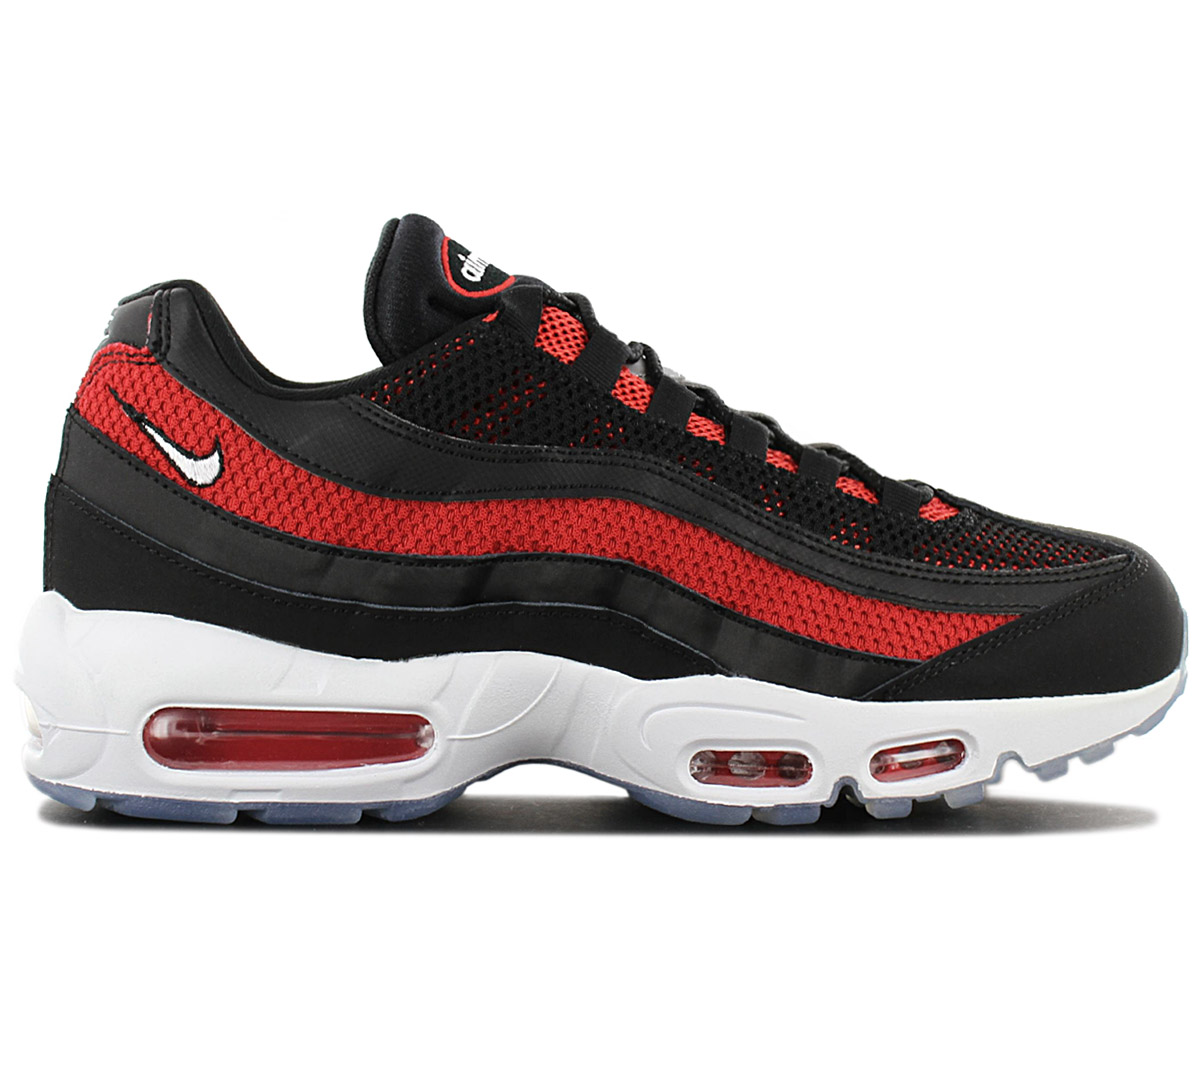 Details about Nike air max 95 Essential Men's Sneaker 749766 039 Black Shoes Trainers New